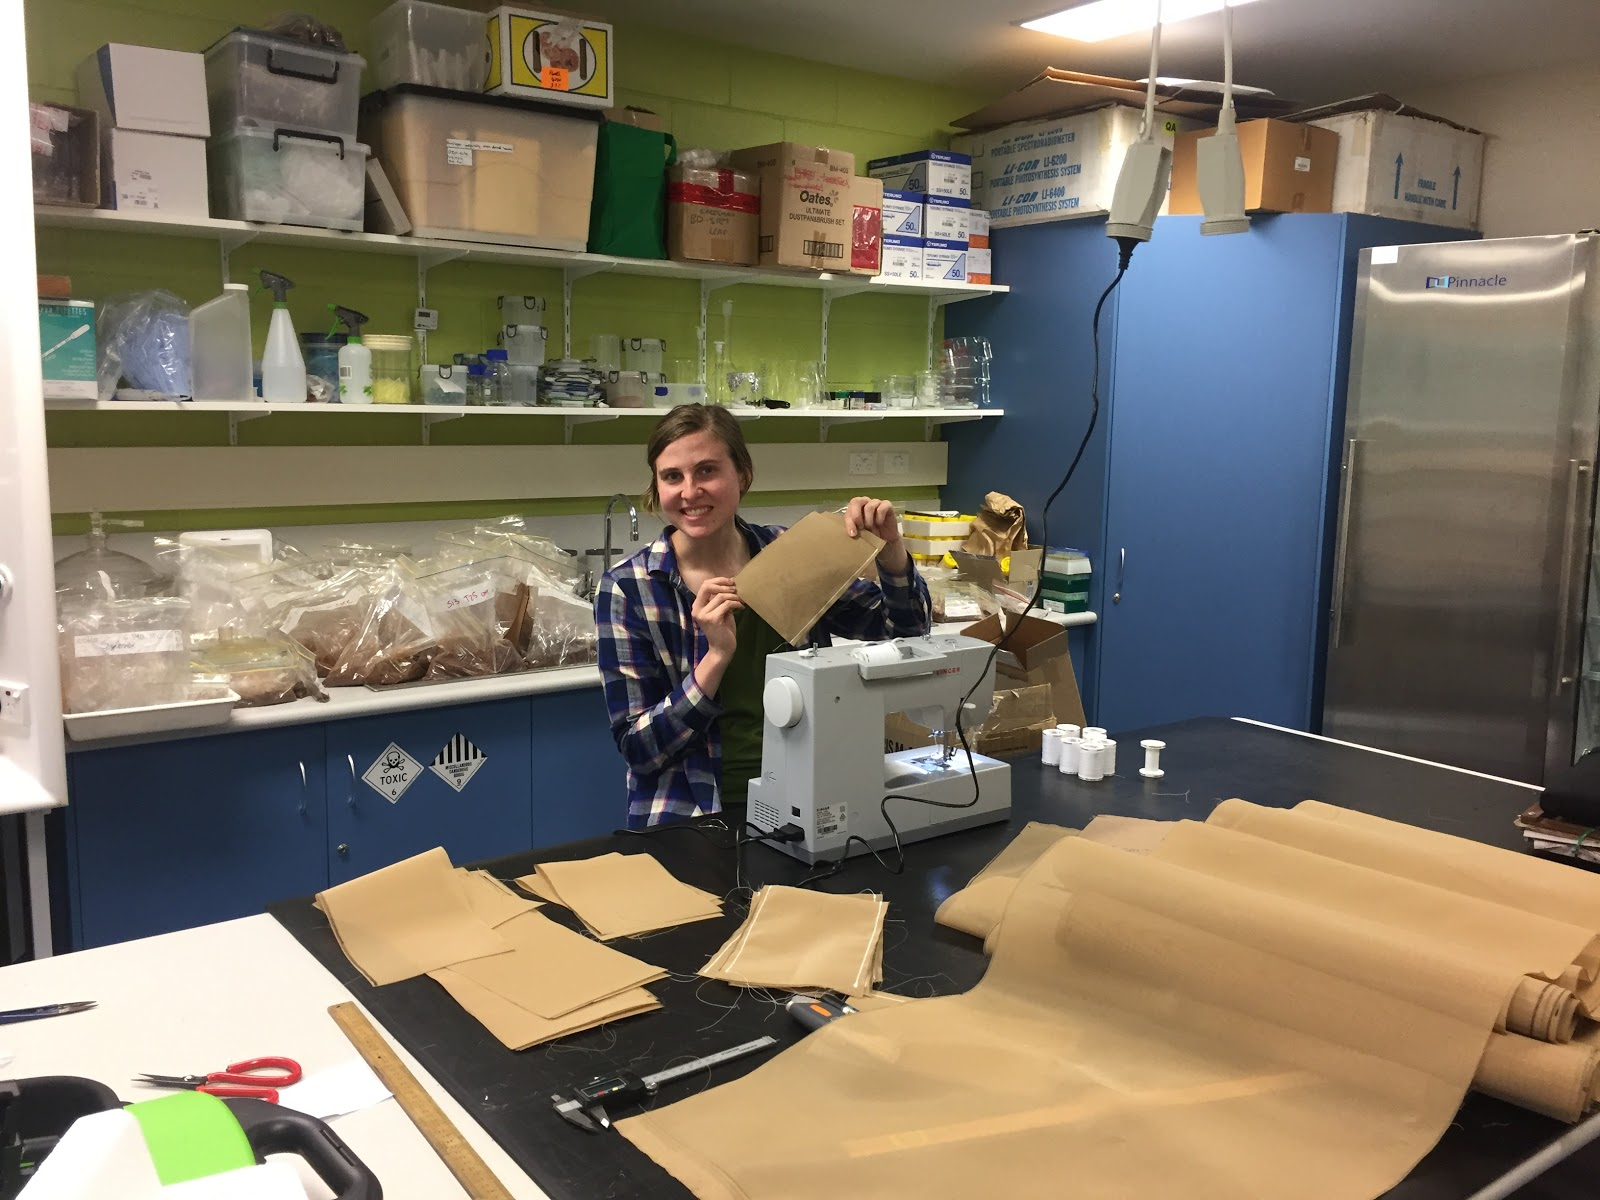 Rebecca Clement preparing bags that will hold samples of various Australian tree species. Decomposition rates and causes will be studied over time. Rebecca is the entomologist for this study. Her work for this project focuses on tree eating termites.